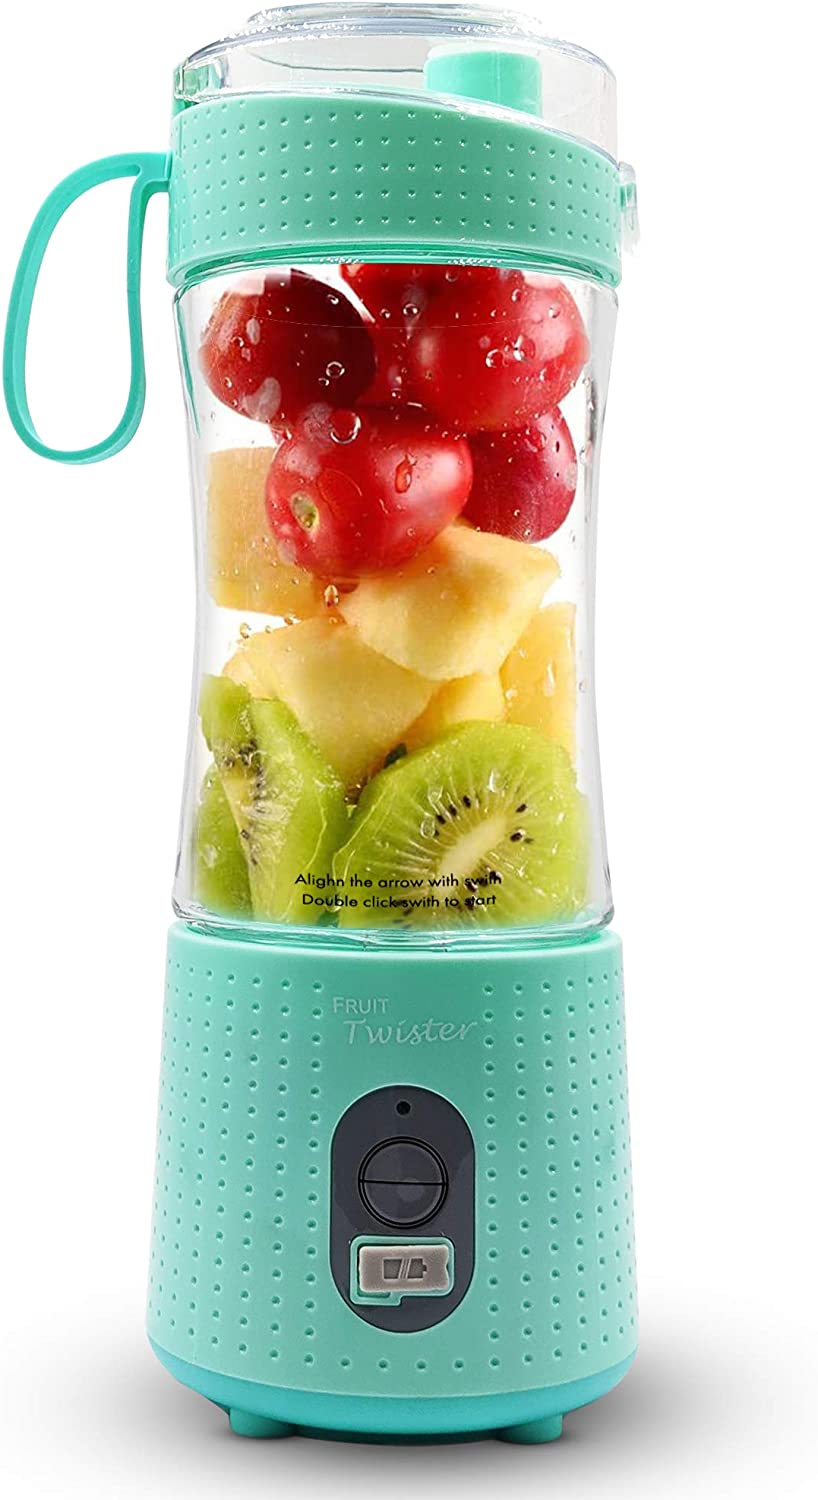 Fruit Twister Portable Blender for Shakes and Smoothies, Personal handheld Mini Travel Size 13 Oz (380ml), Battery Operated and USB Rechargeable Home Office Gym Beach Mint Green